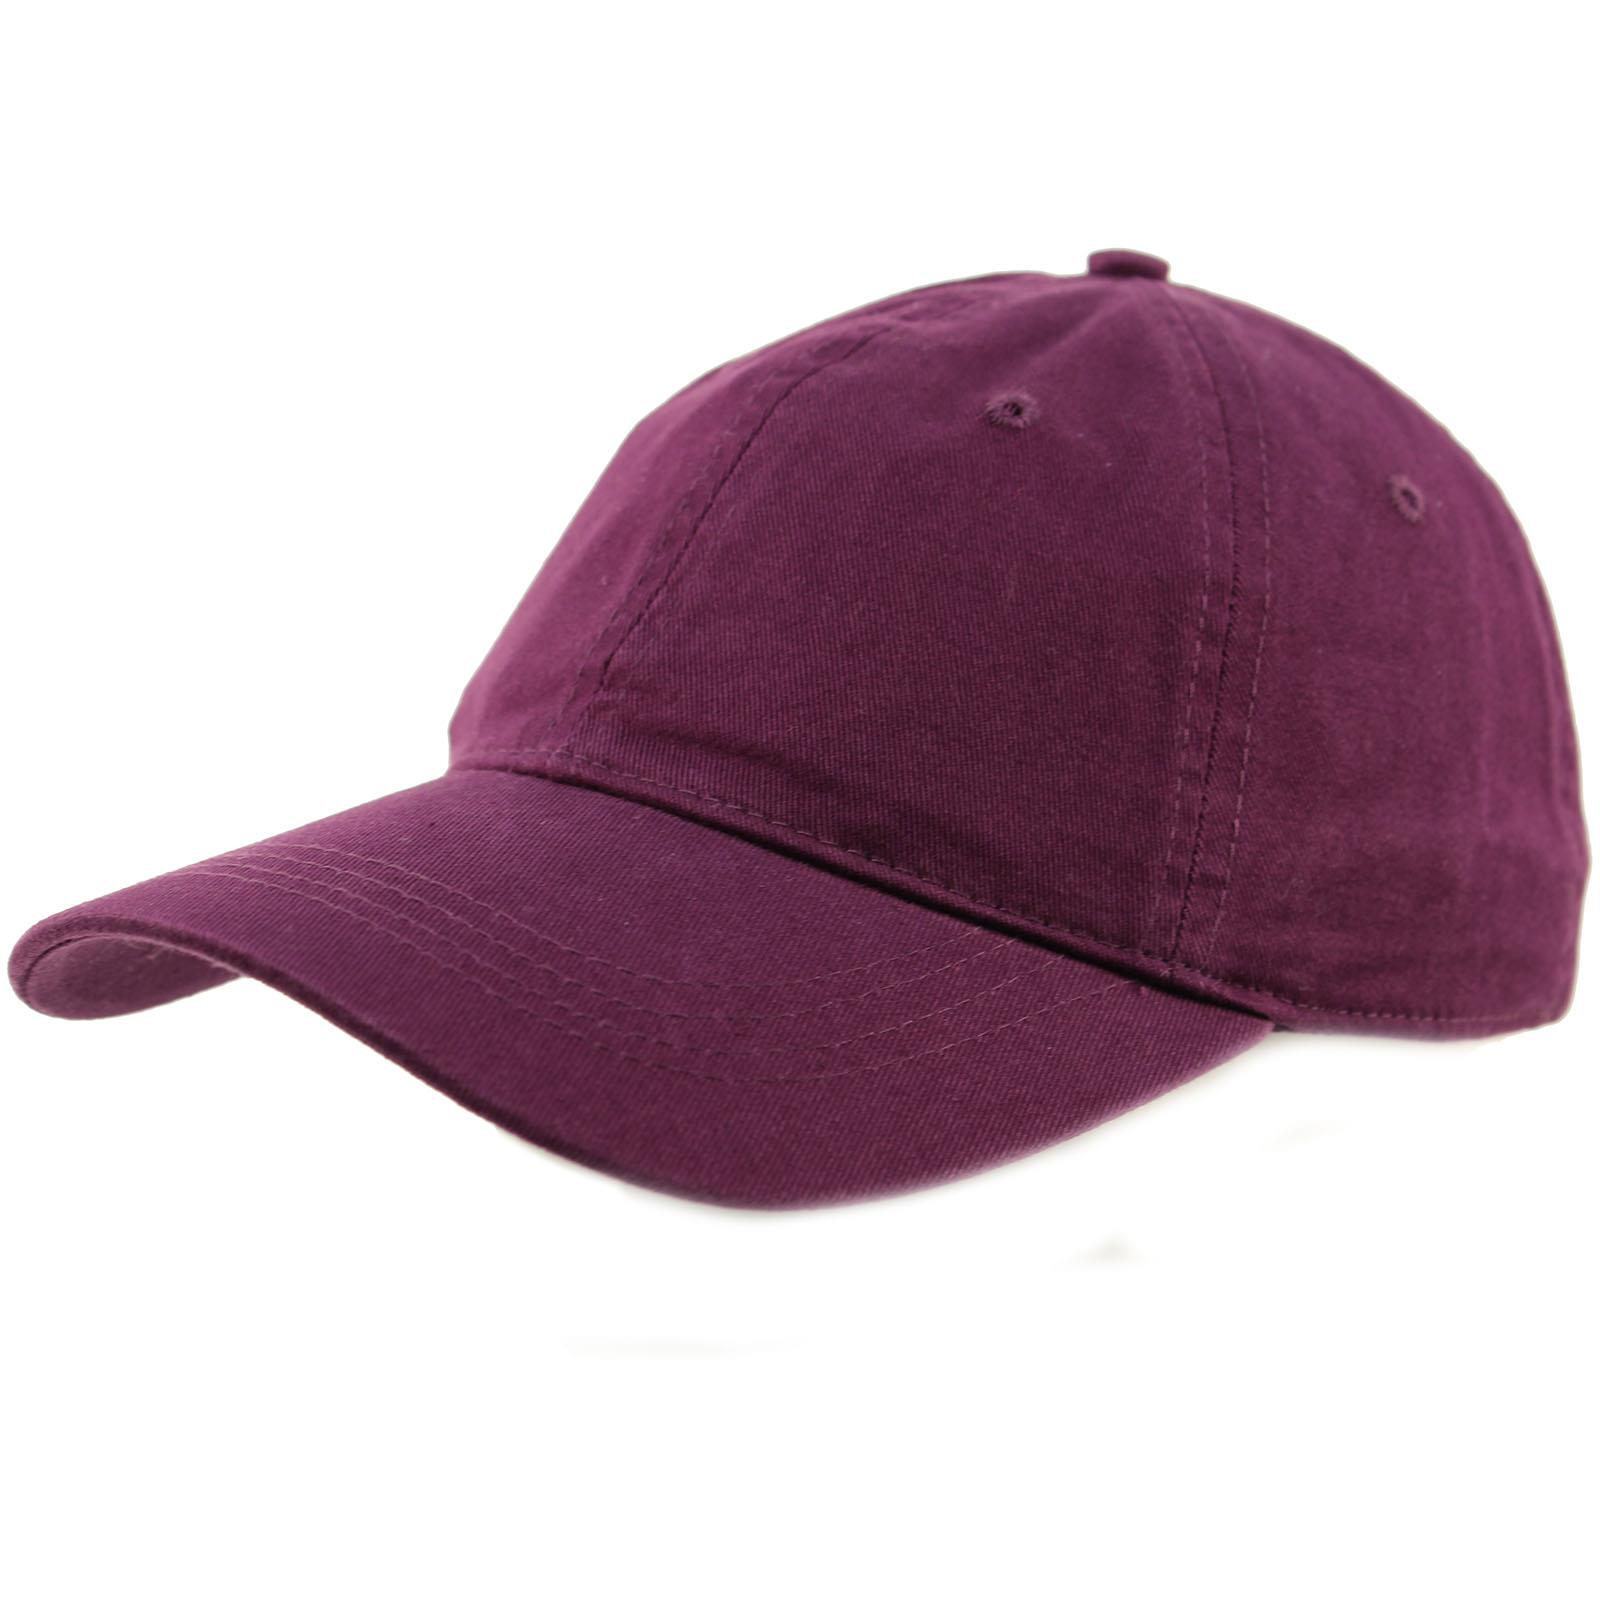 One Size Fits Most Adjustable Blank 6 Panel Low Profile Cotton Canvas Mesh Back Baseball Cap//Trucker Hat